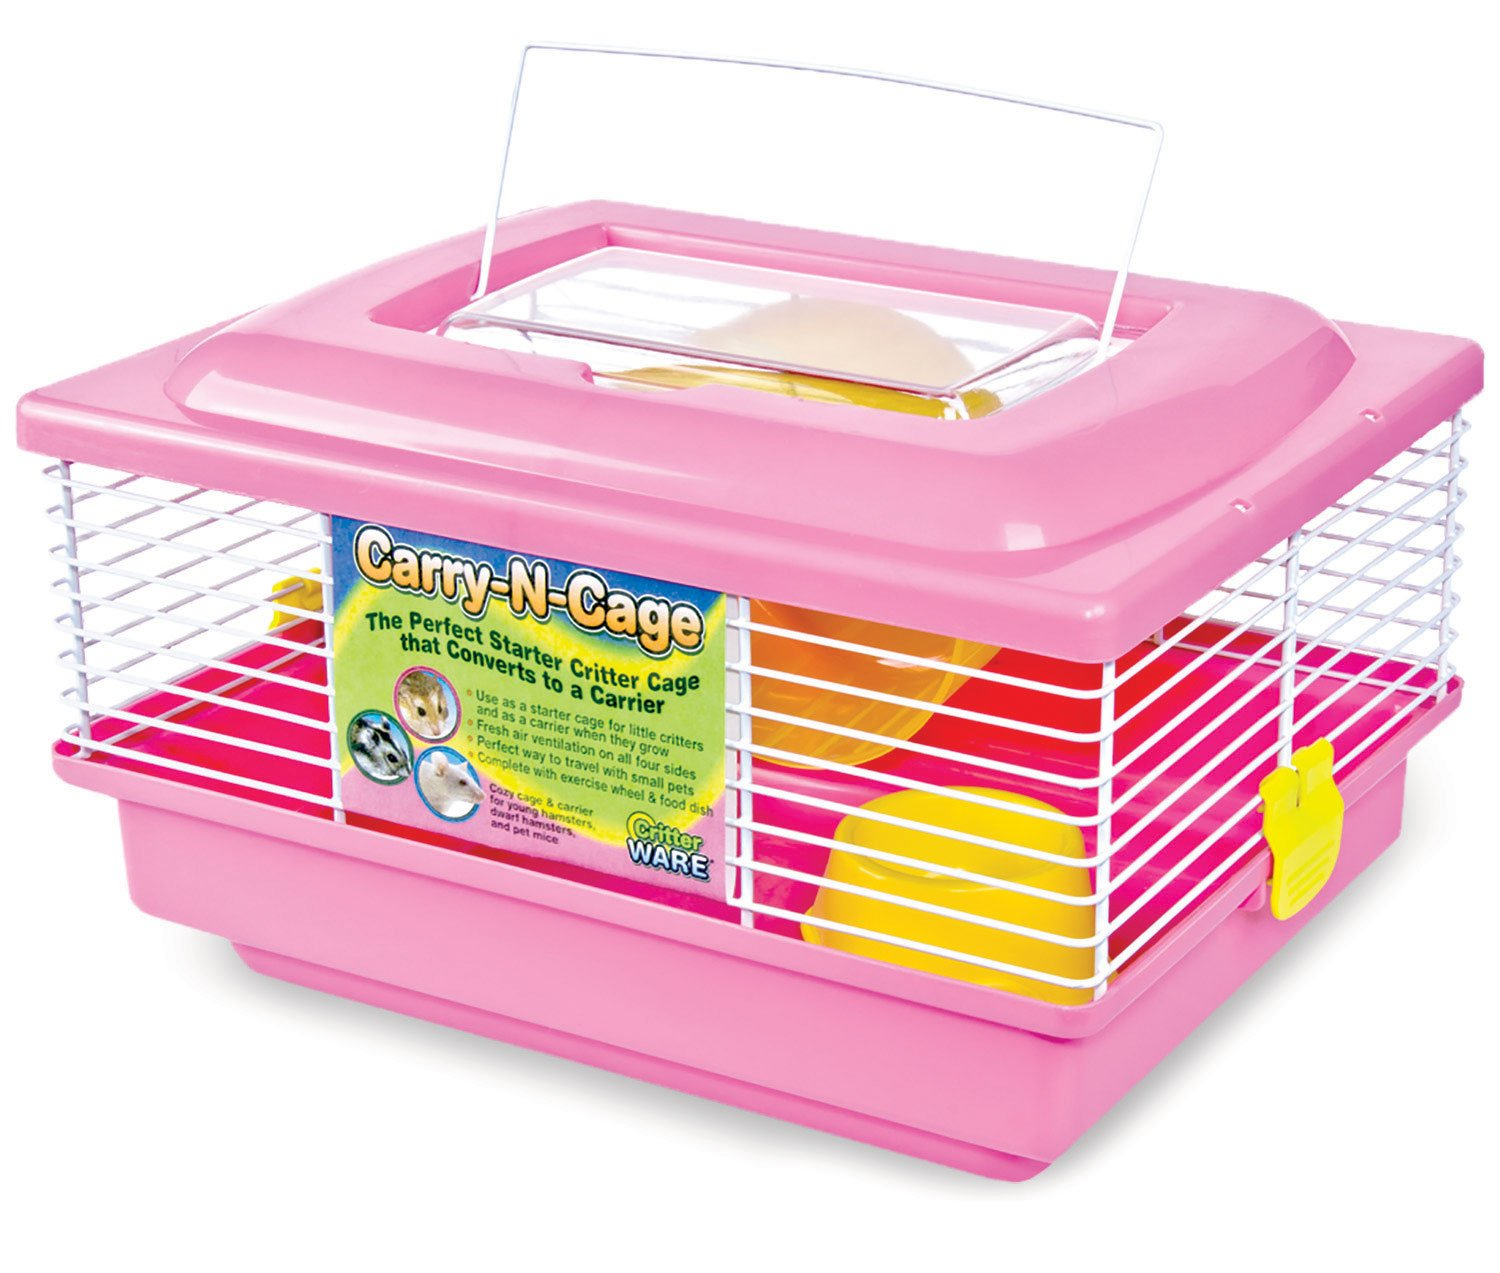 Ware Manufacturing Carry-N-Cage for Small Animals, Pink